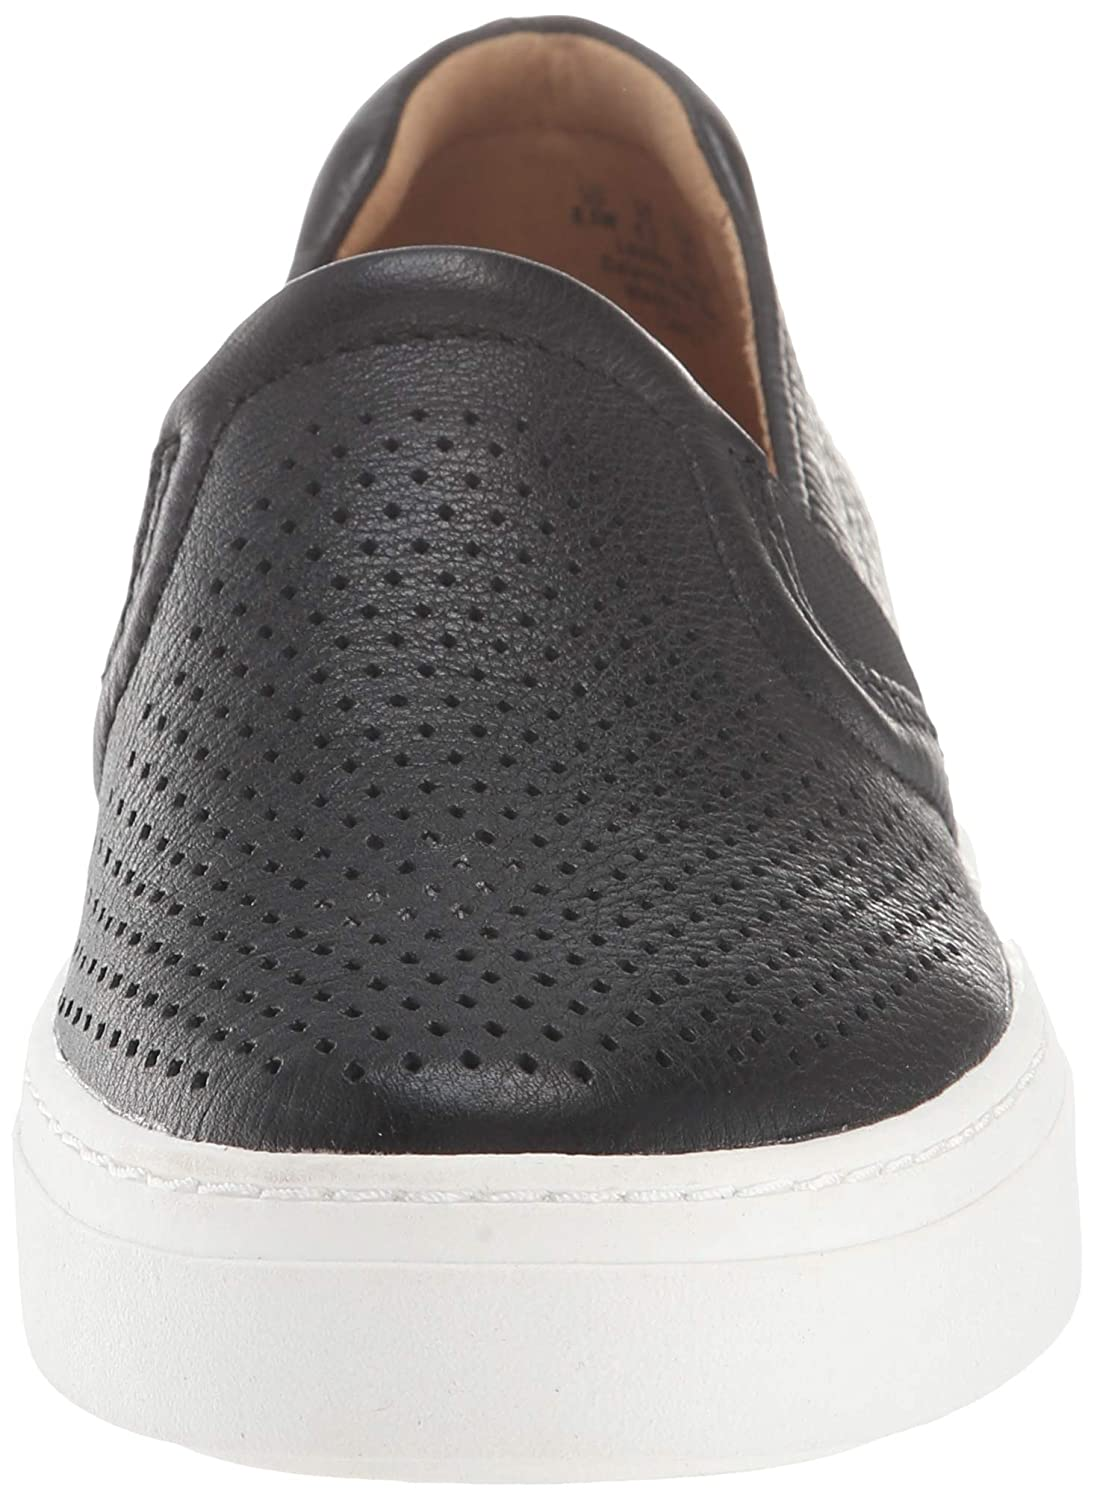 Naturalizer Womens Carly Sneaker